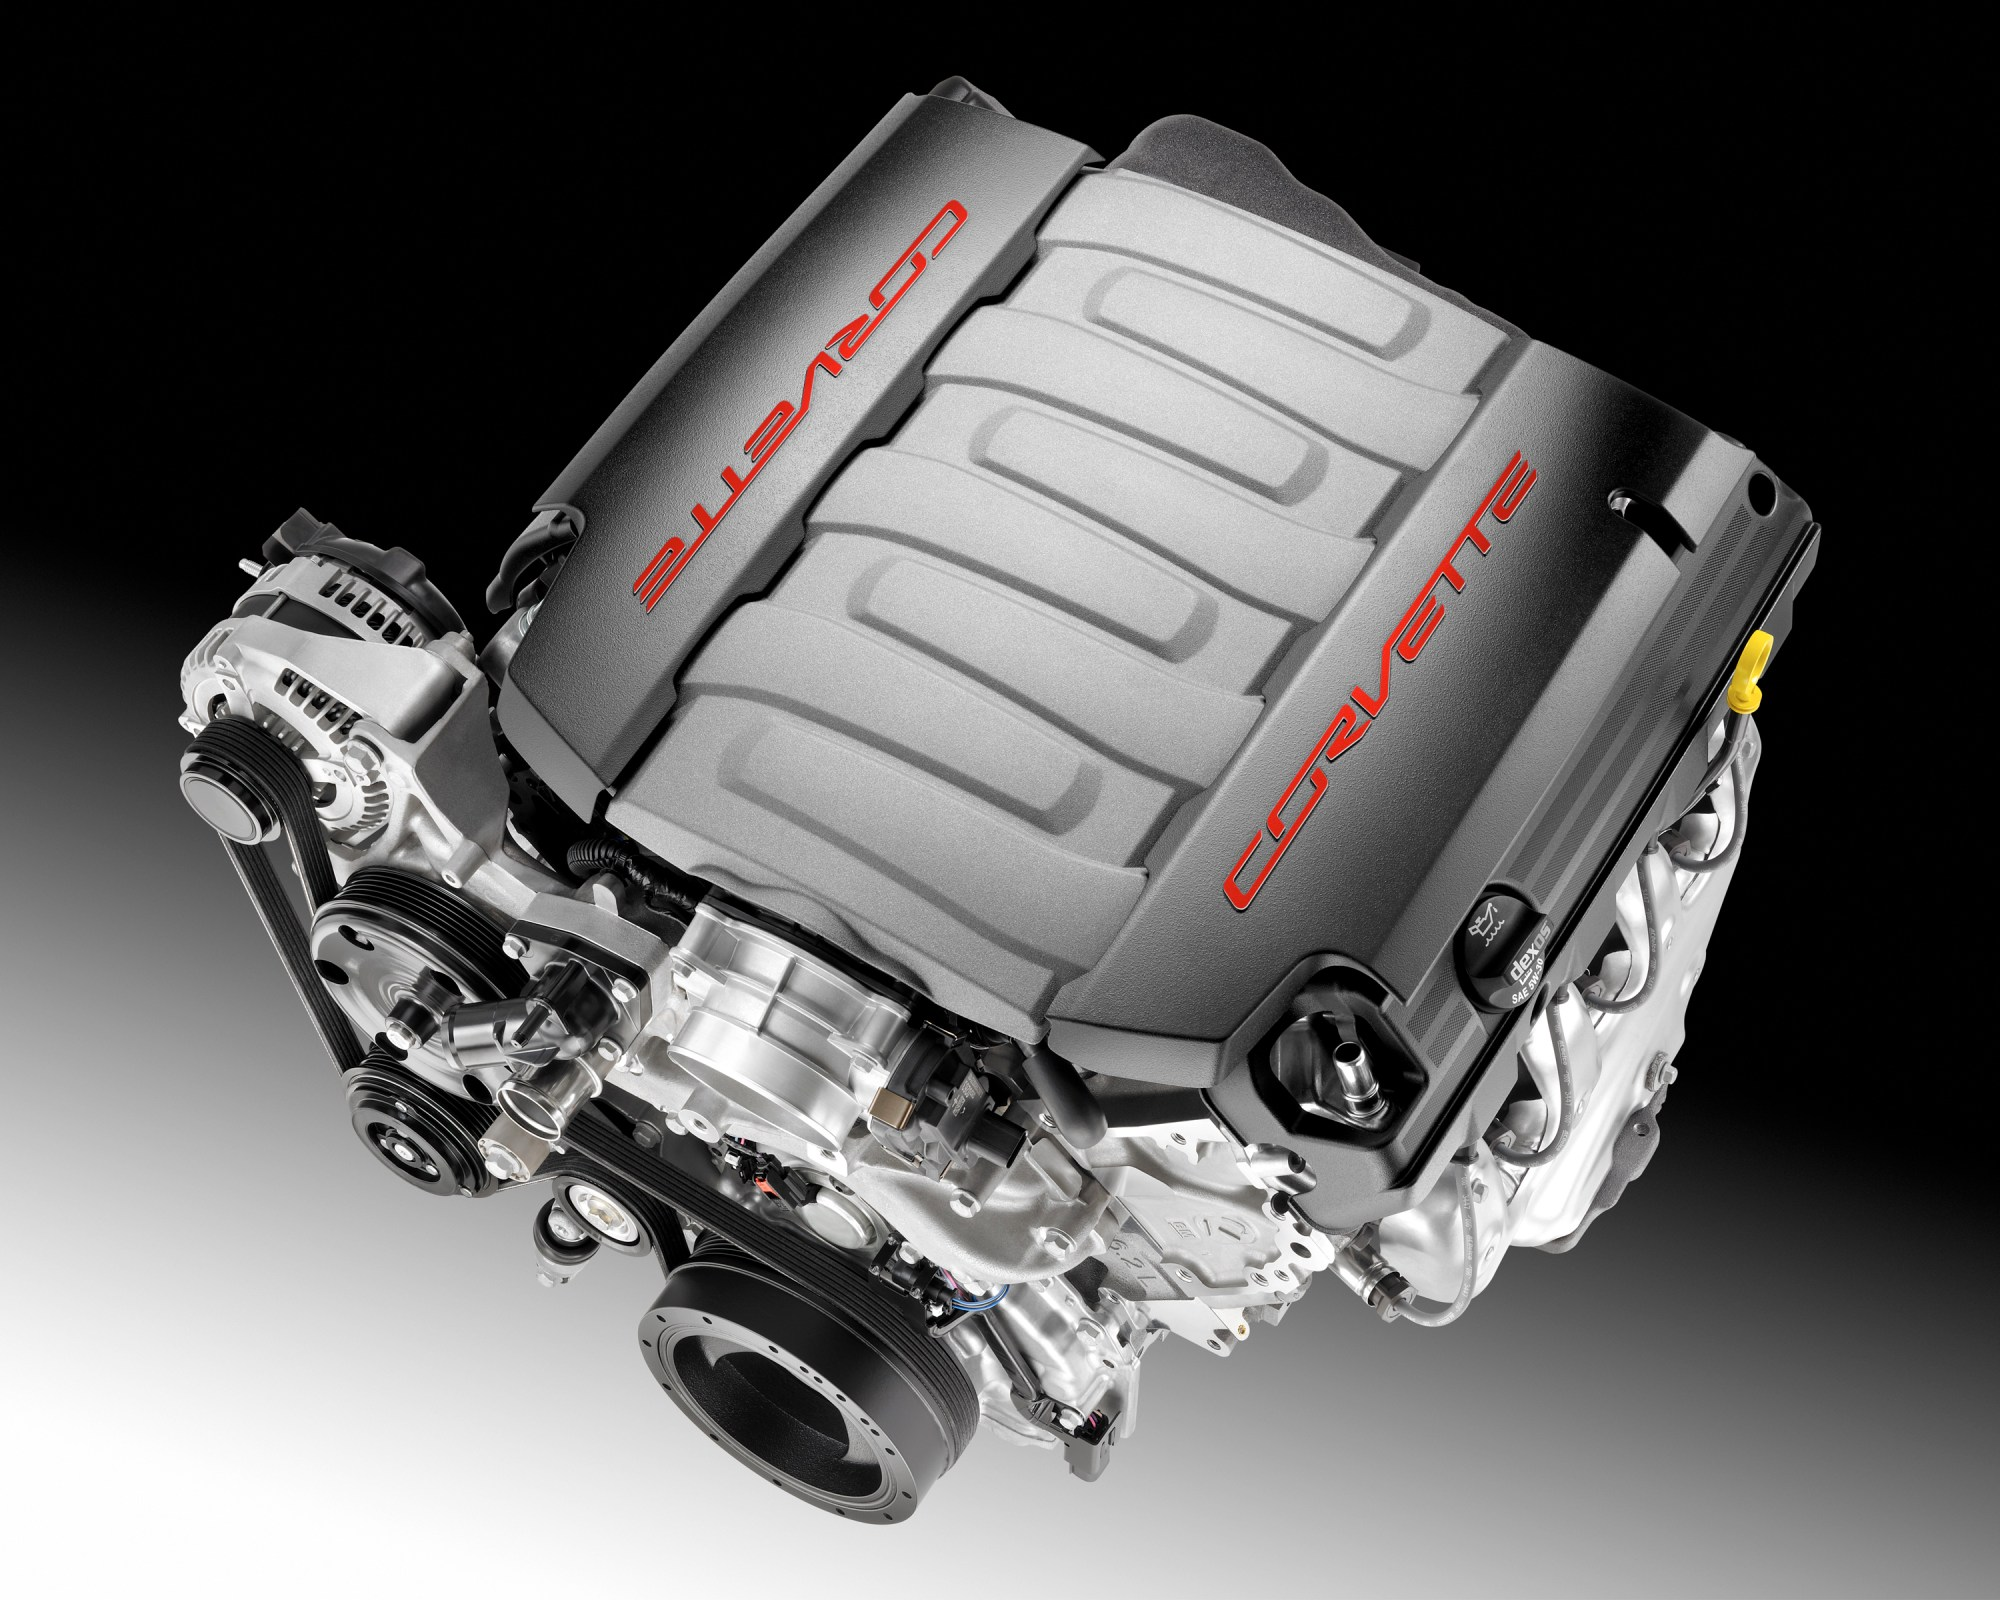 hight resolution of chevrolet introduces the all new lt1 v8 engine for the c7 corvette top speed